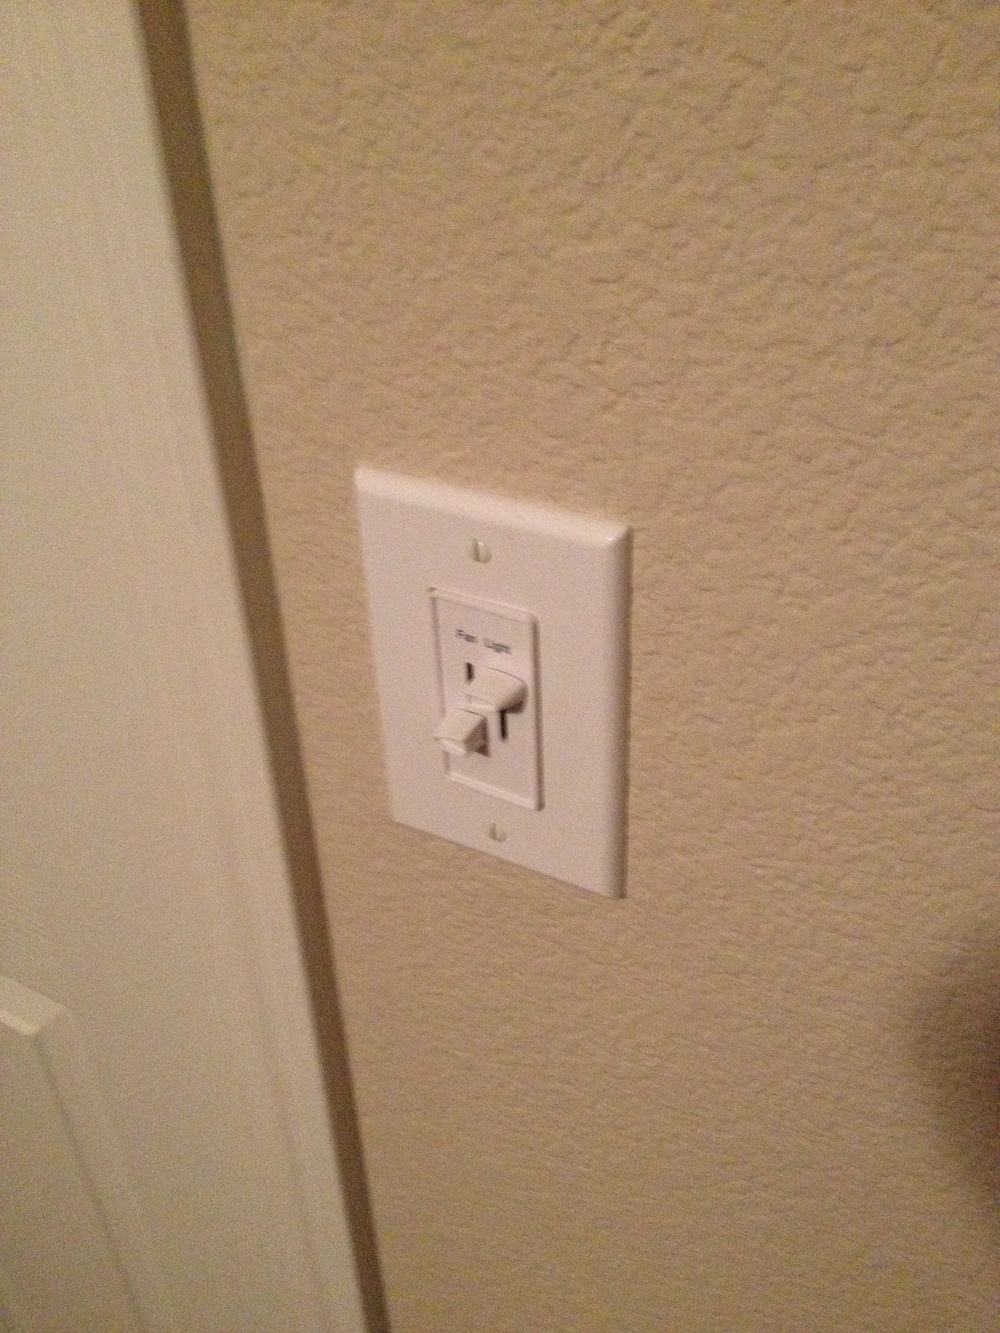 Fan:Light Combo Switch.JPG